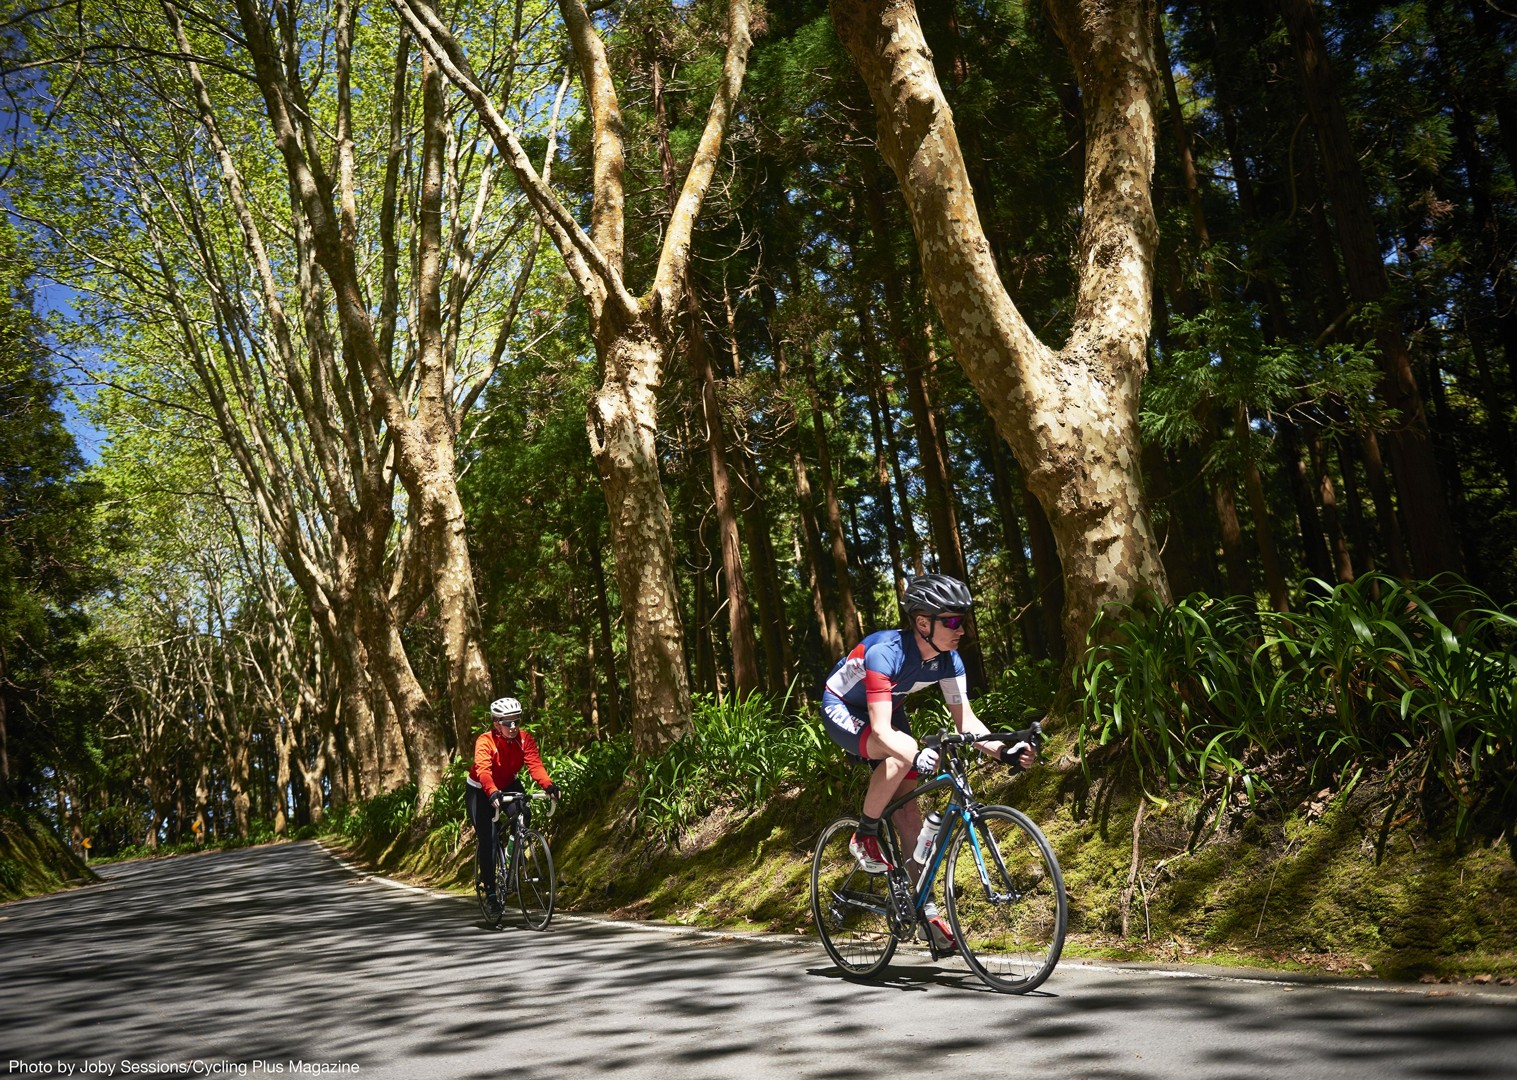 cycling-holiday-in-the-azores-sao-miguel-skedaddle.jpg - The Azores - Lost World of Sao Miguel - Guided Road Cycling Holiday - Road Cycling